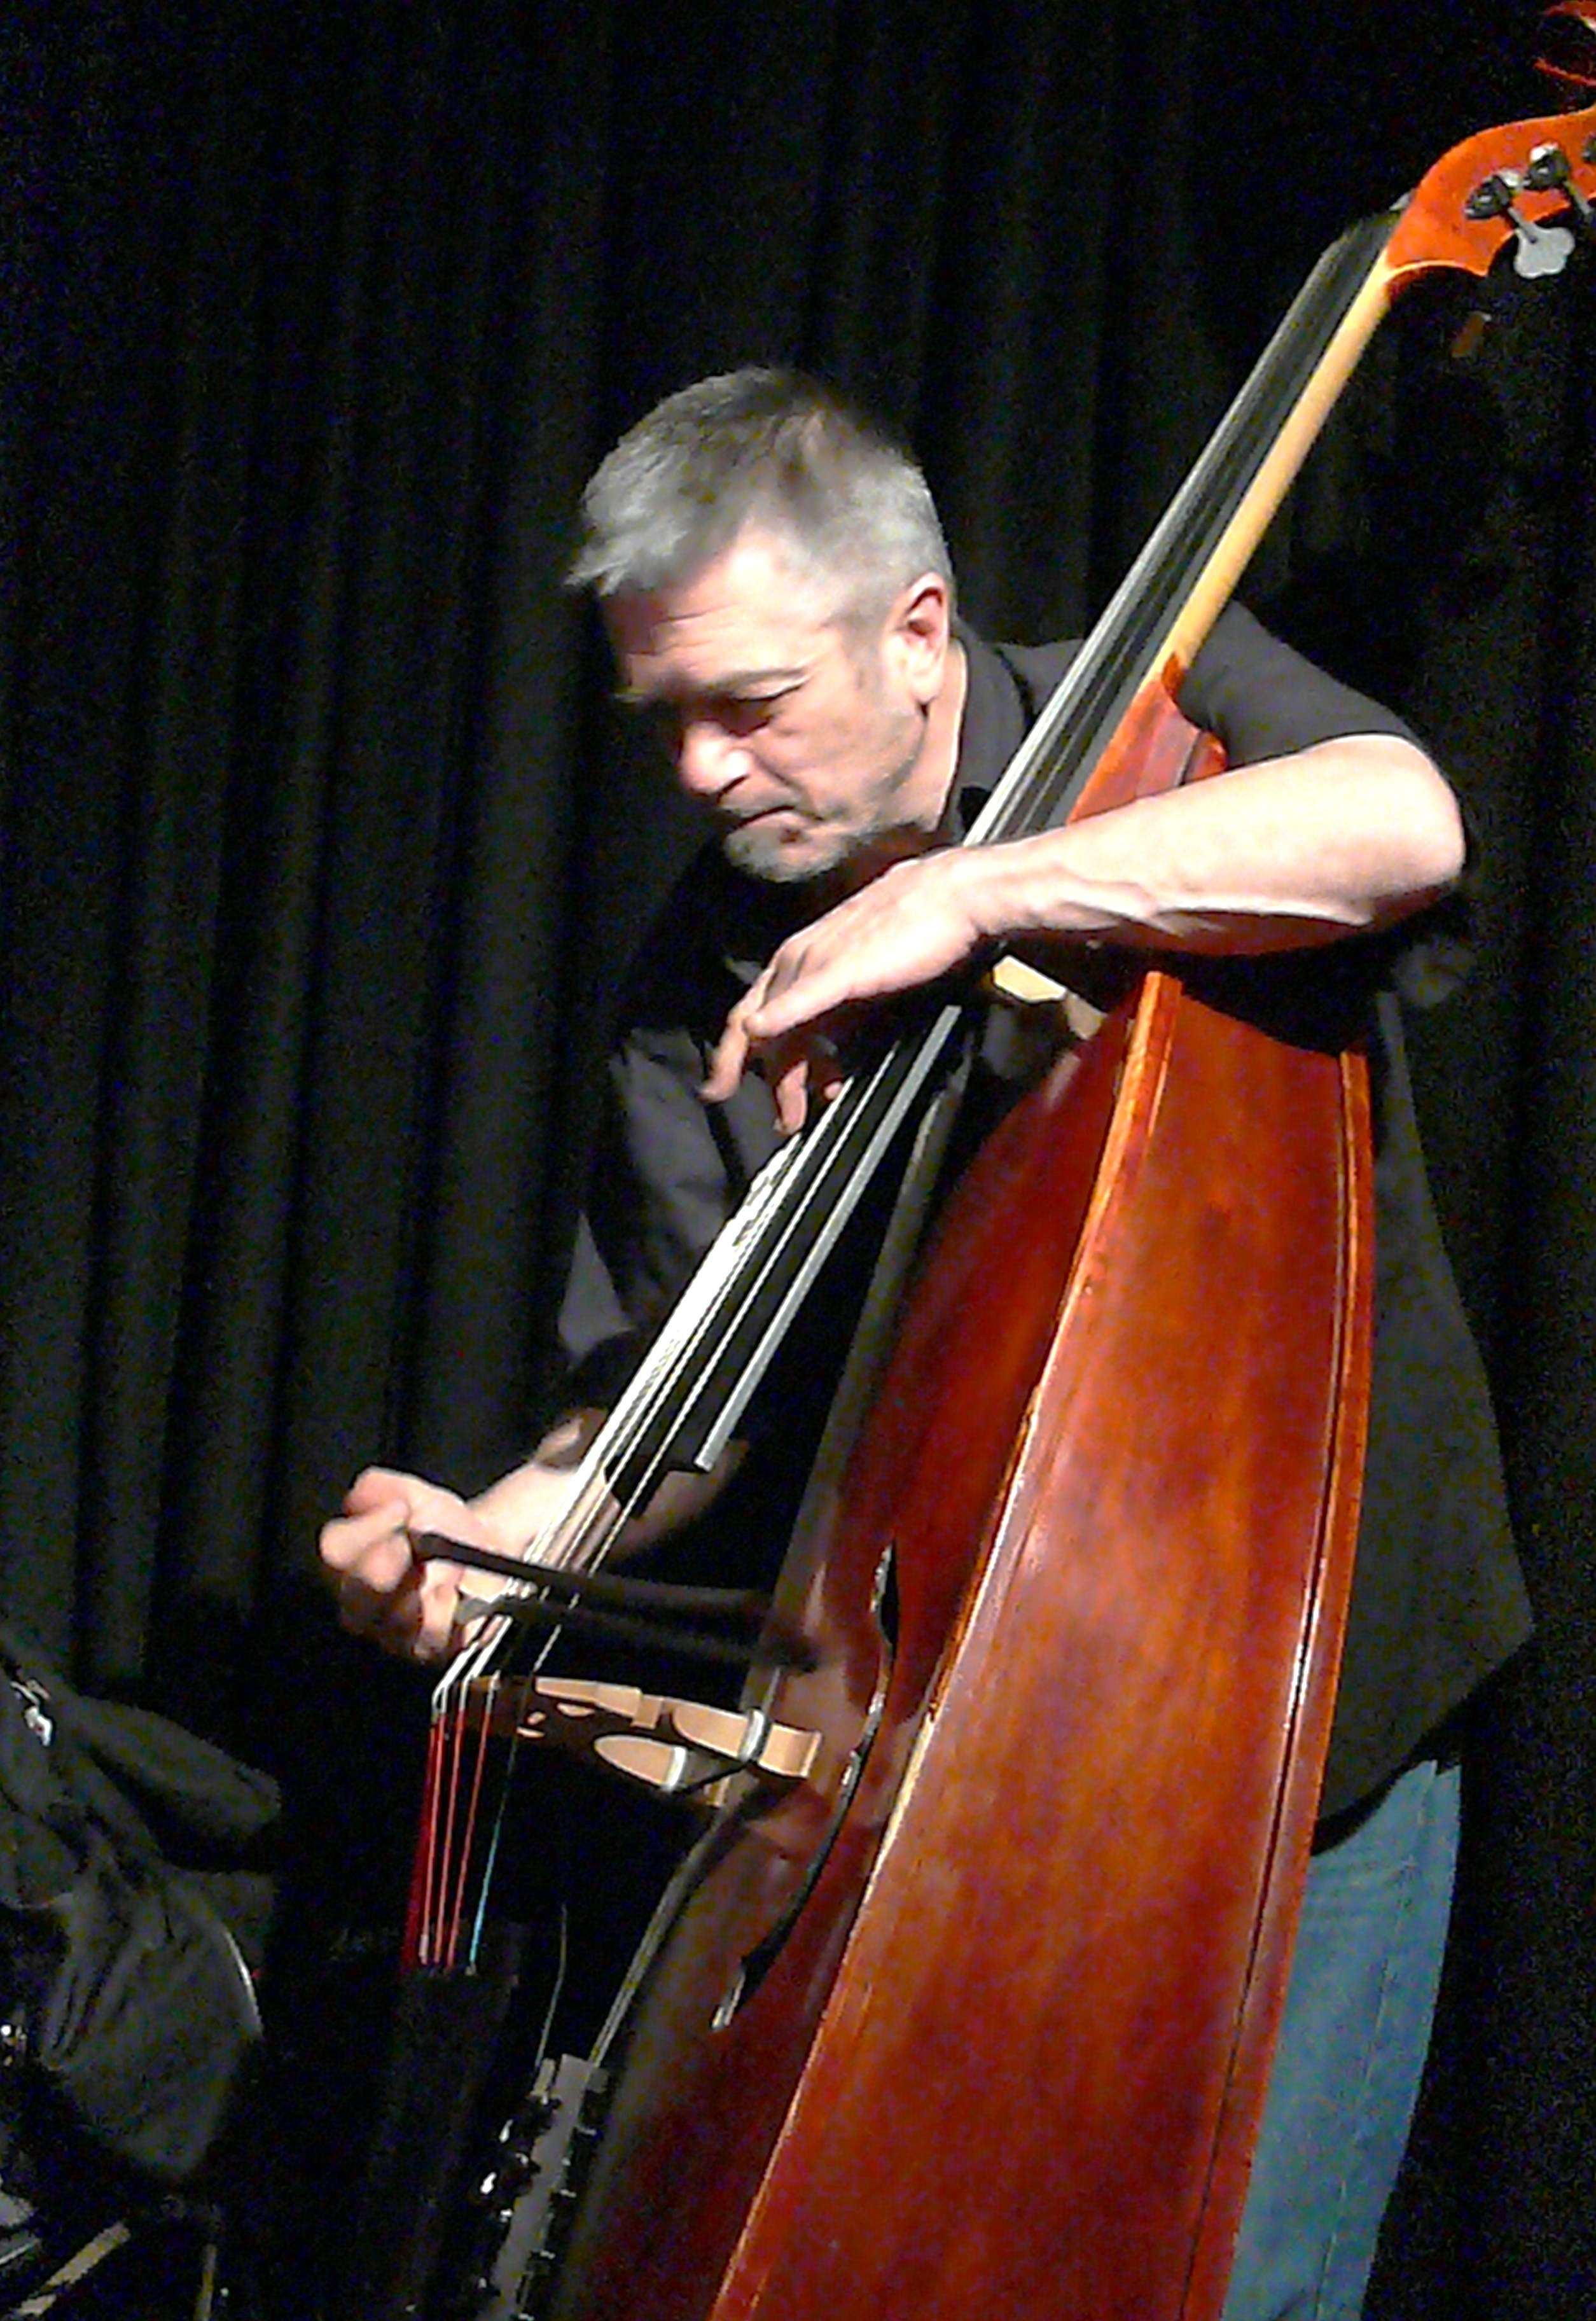 Paul Rogers at the Vortex, London, February 2010